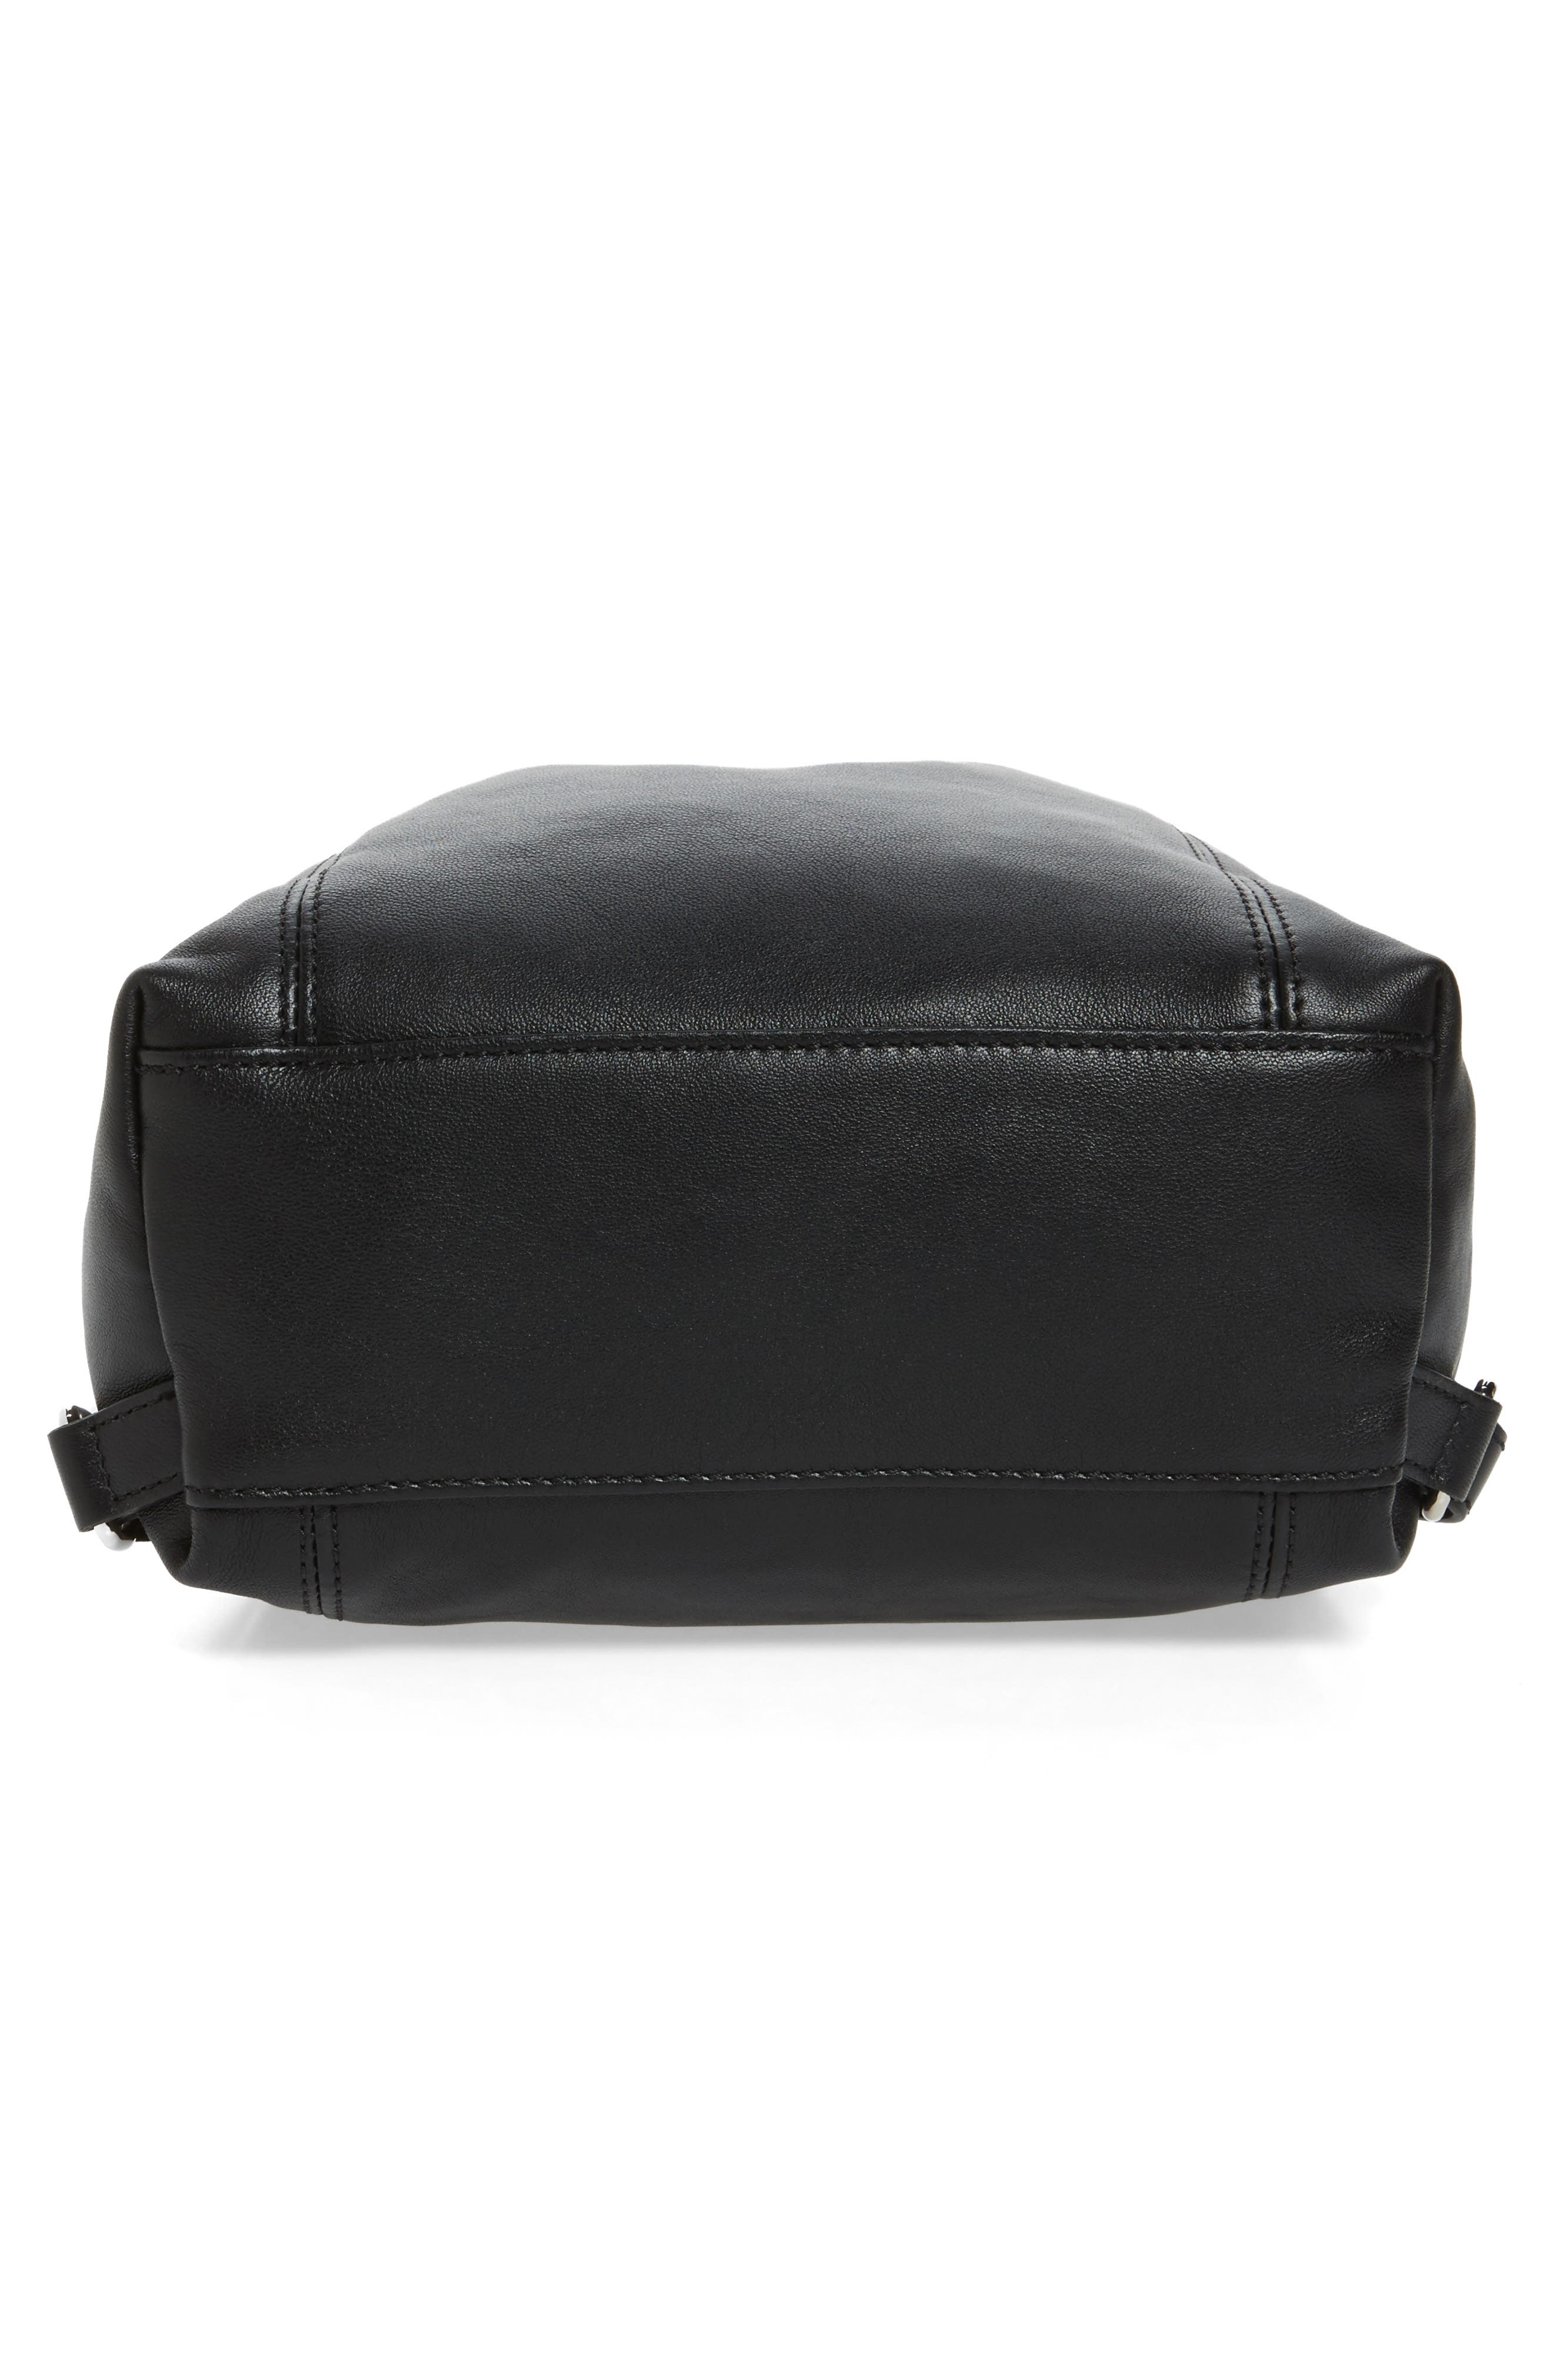 Extra Small Le Pliage Cuir Backpack,                             Alternate thumbnail 4, color,                             Black